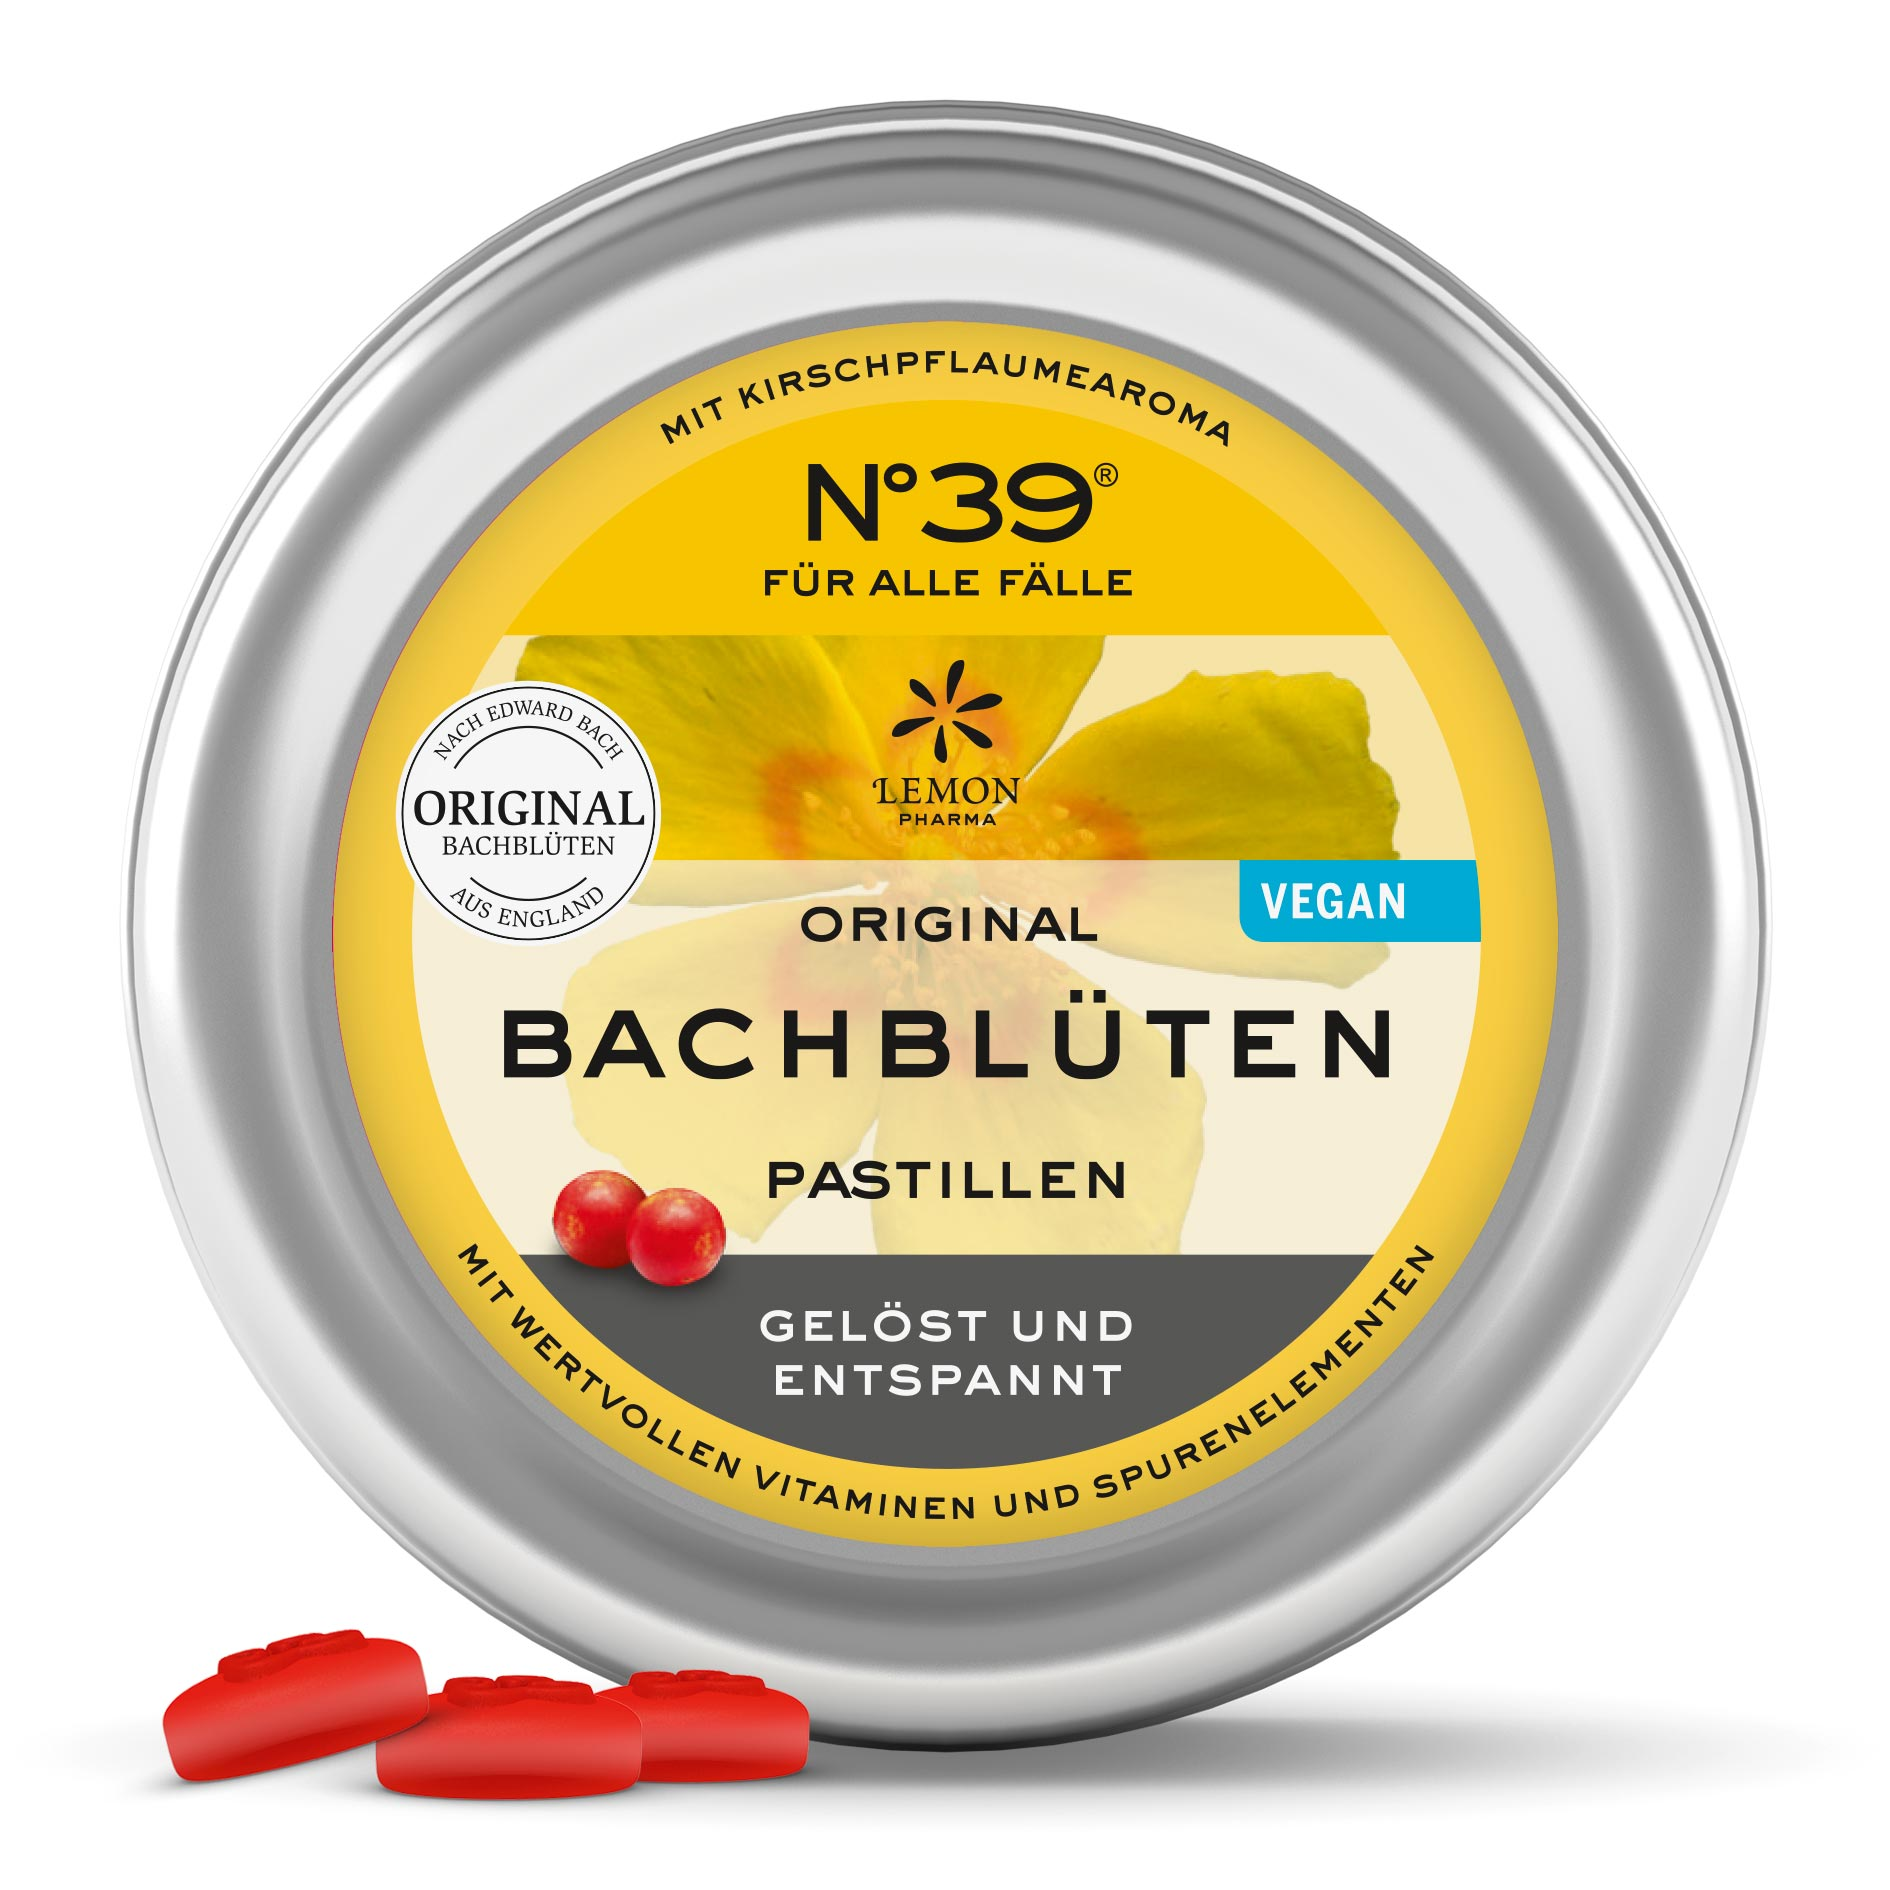 Pastillen Pastilles 39 Für alle Fälle For Emergencies Lemon Pharma Original Bachblüten bach flower rescue